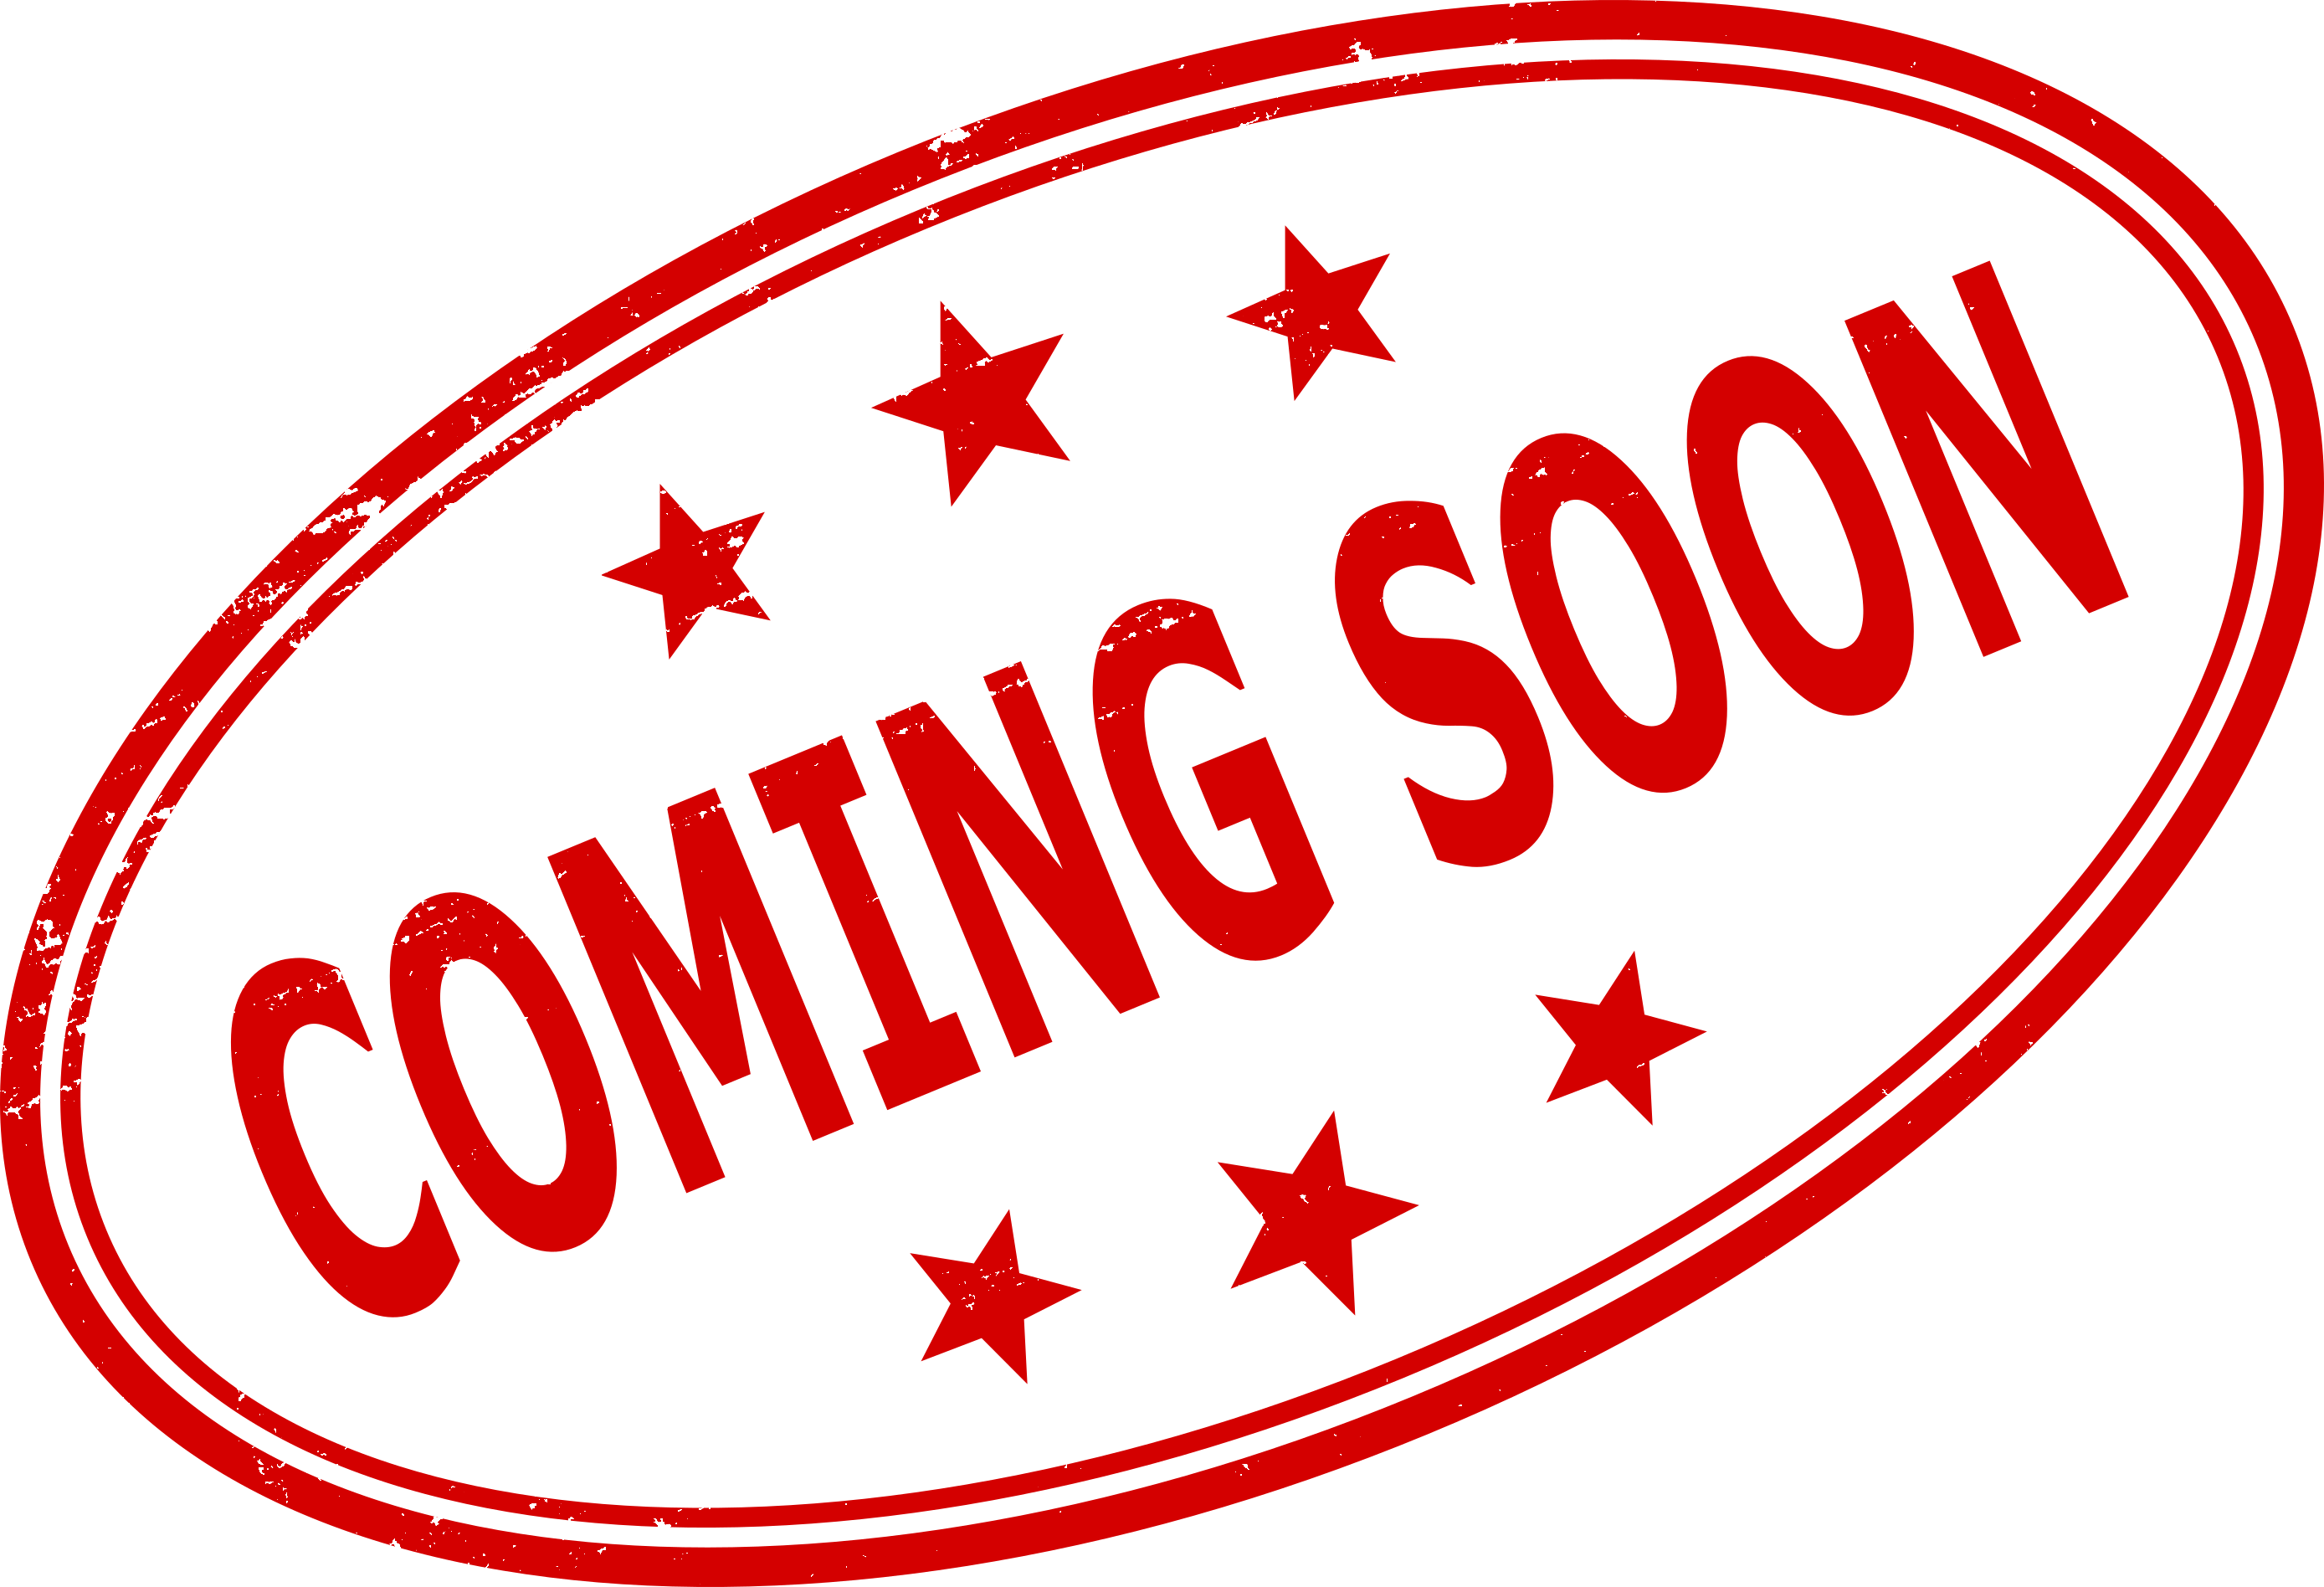 Free coming soon clipart jpg transparent stock Coming soon clipart clipart images gallery for free download ... jpg transparent stock